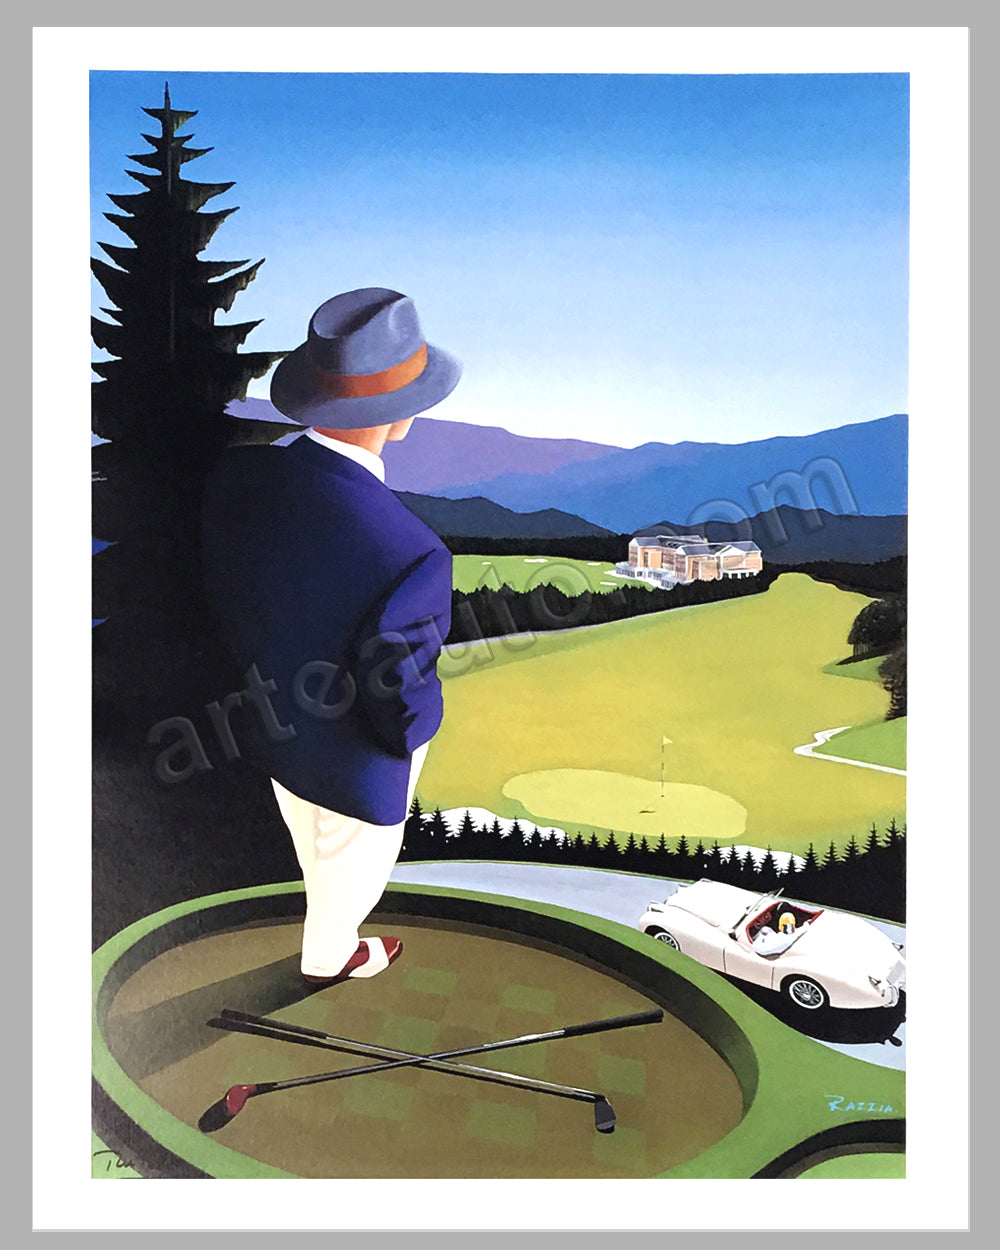 Jaguar XK 120 at the golf course poster by Razzia (project for a golf course in Japan